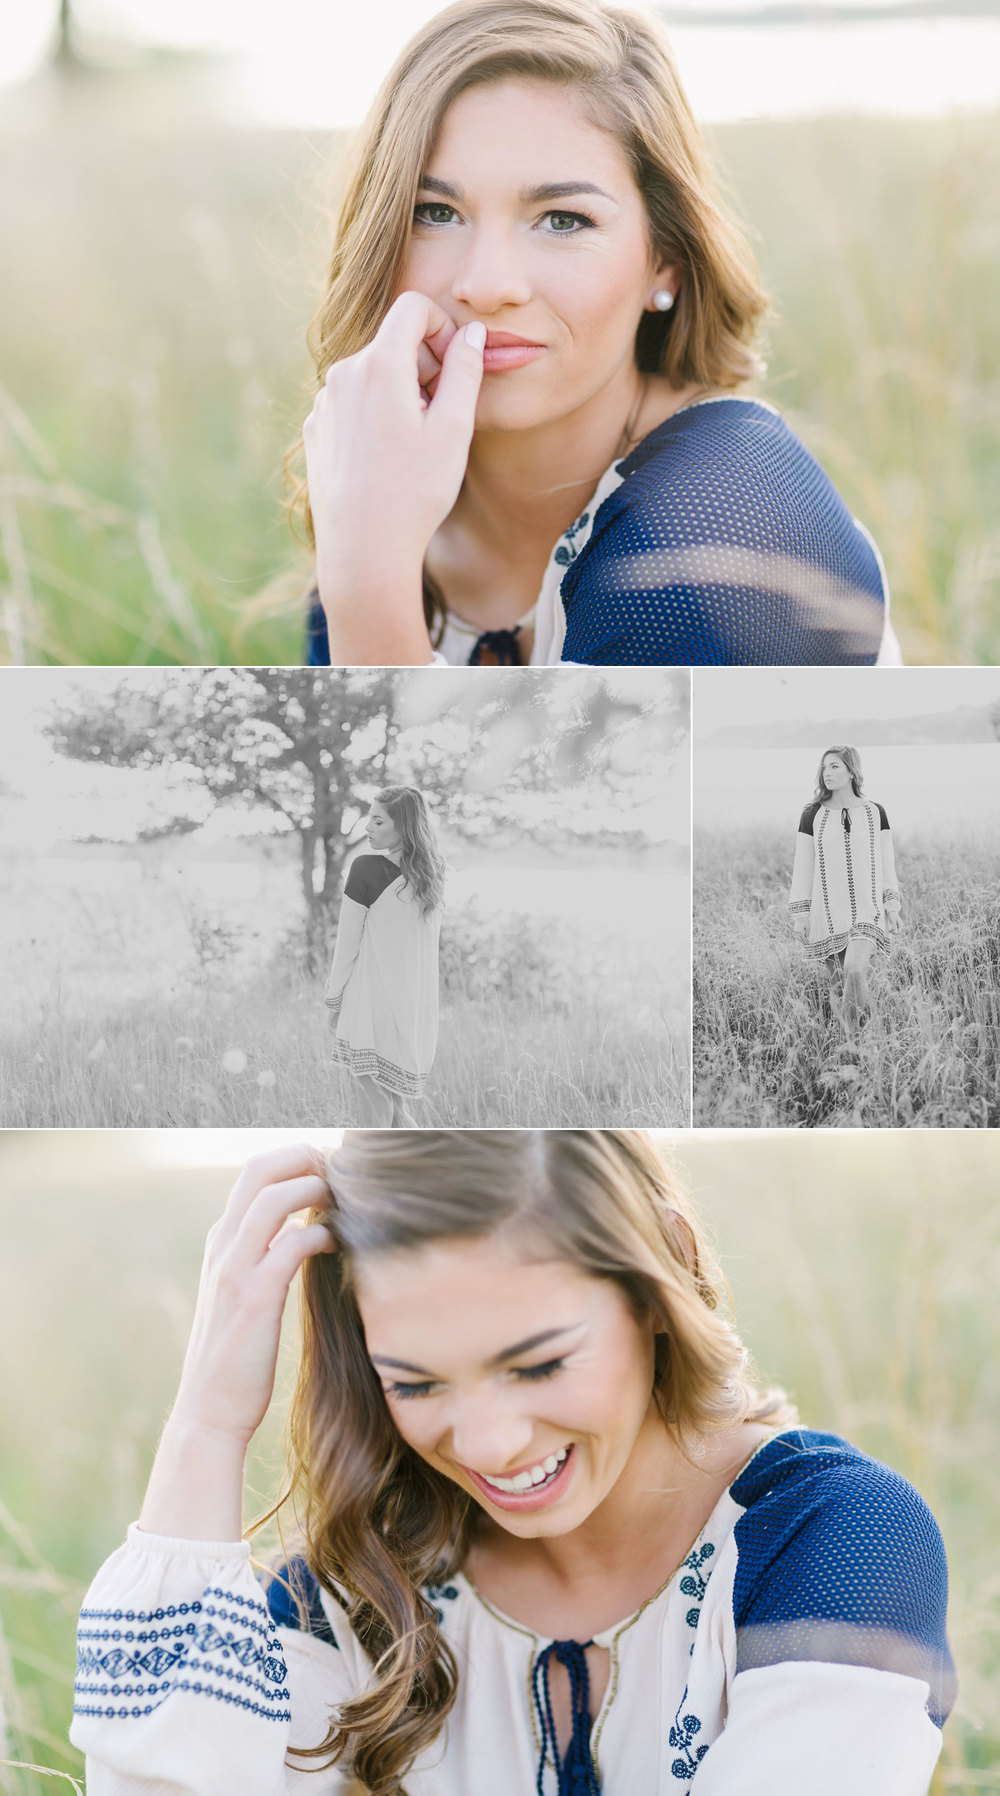 Dayton-Senior-Photography-Lux-Senior-Photography-03.jpg